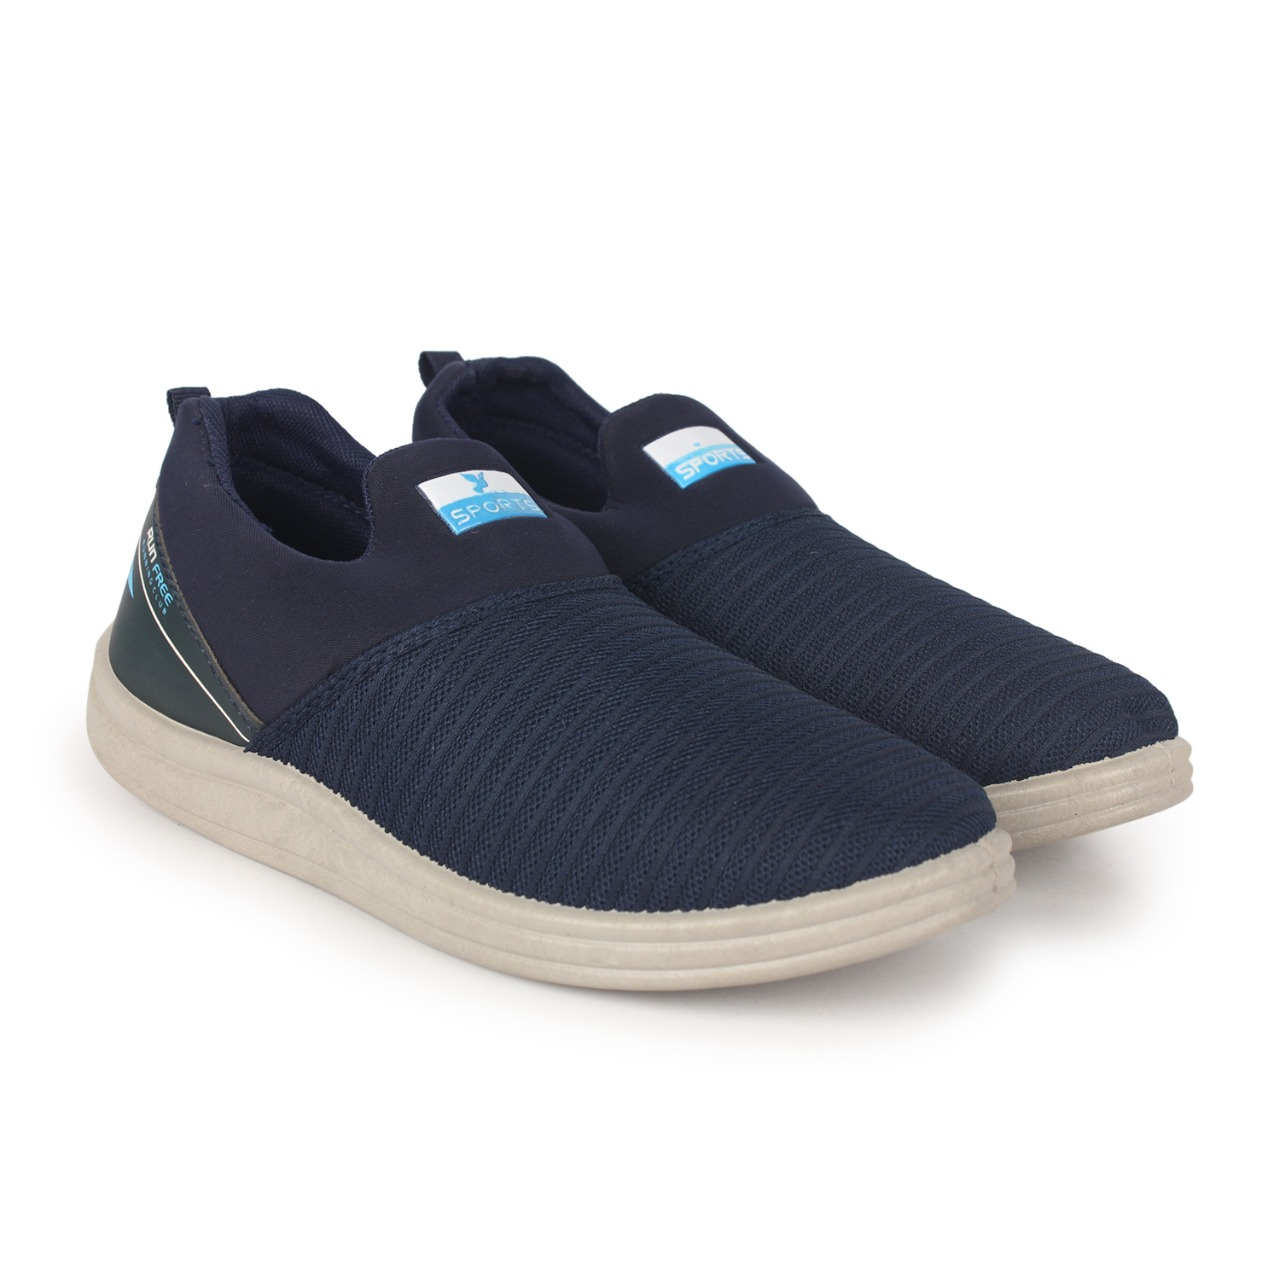 RNT   RNT New Fashionable Shoes for Men